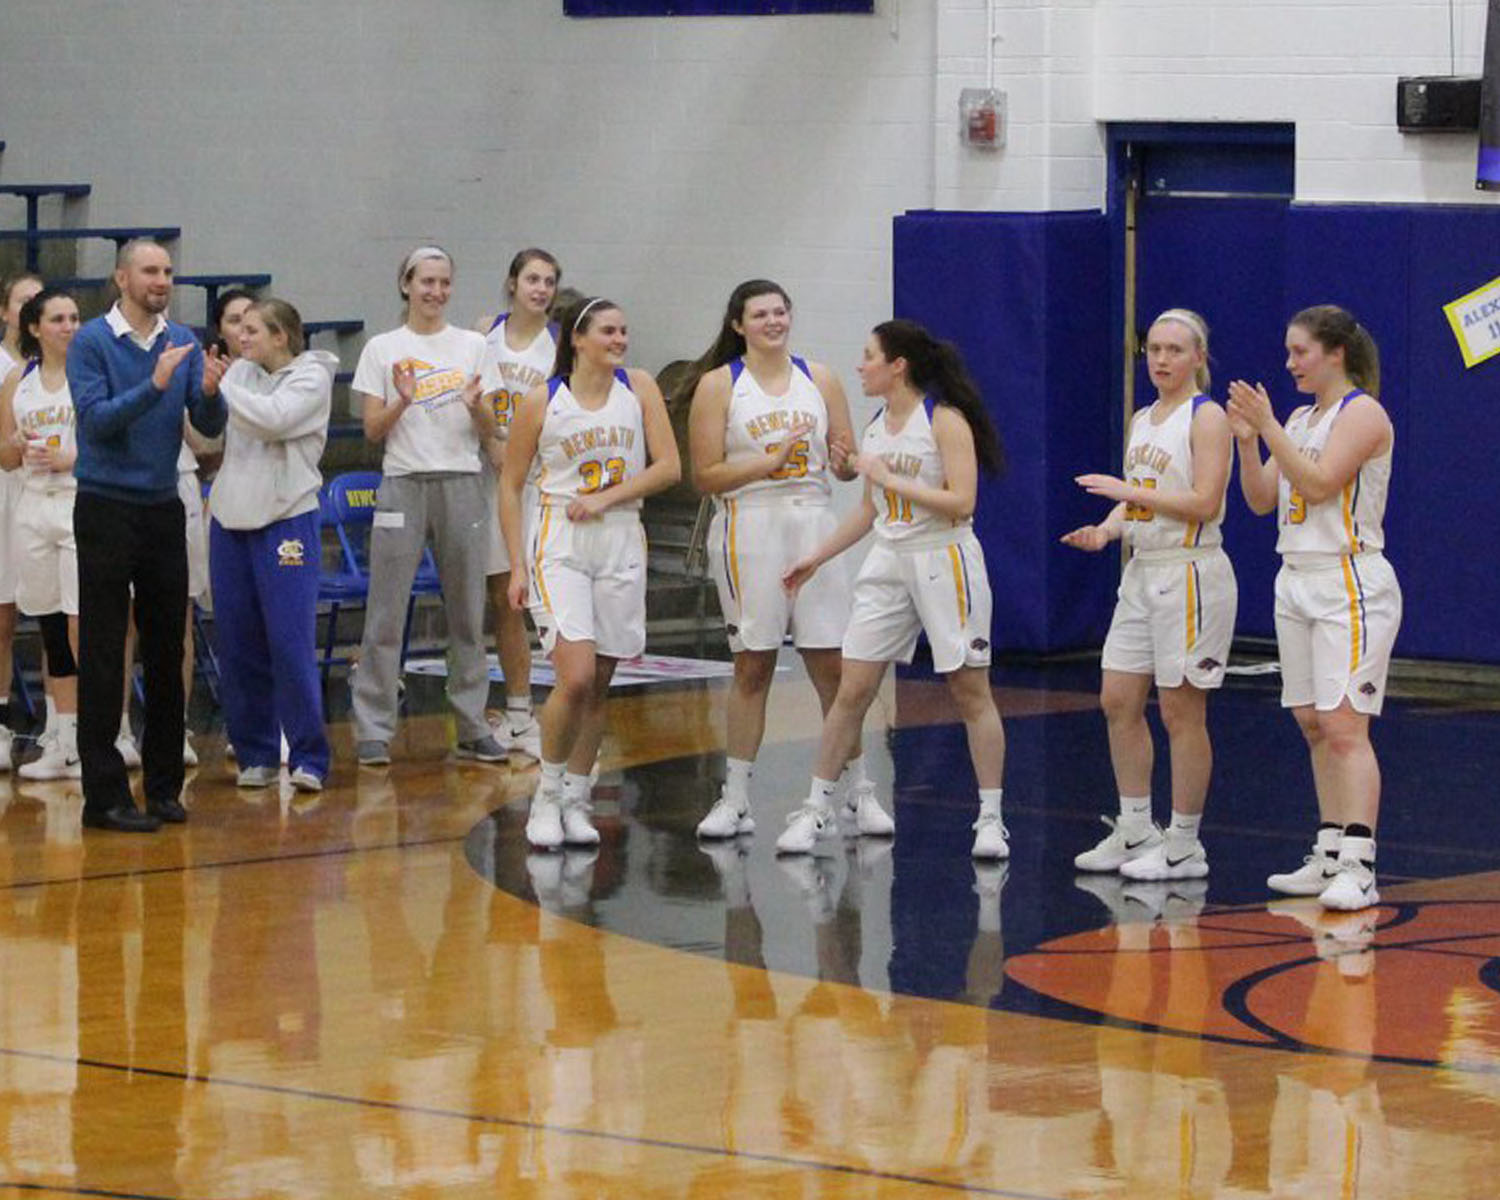 Coach Stoll led the Lady Thoroughbreds to three All A 9th Region Championships, three All A State Semi-final appearances, one All A State Final appearance, one District Championship, and one 9th Region Championship.